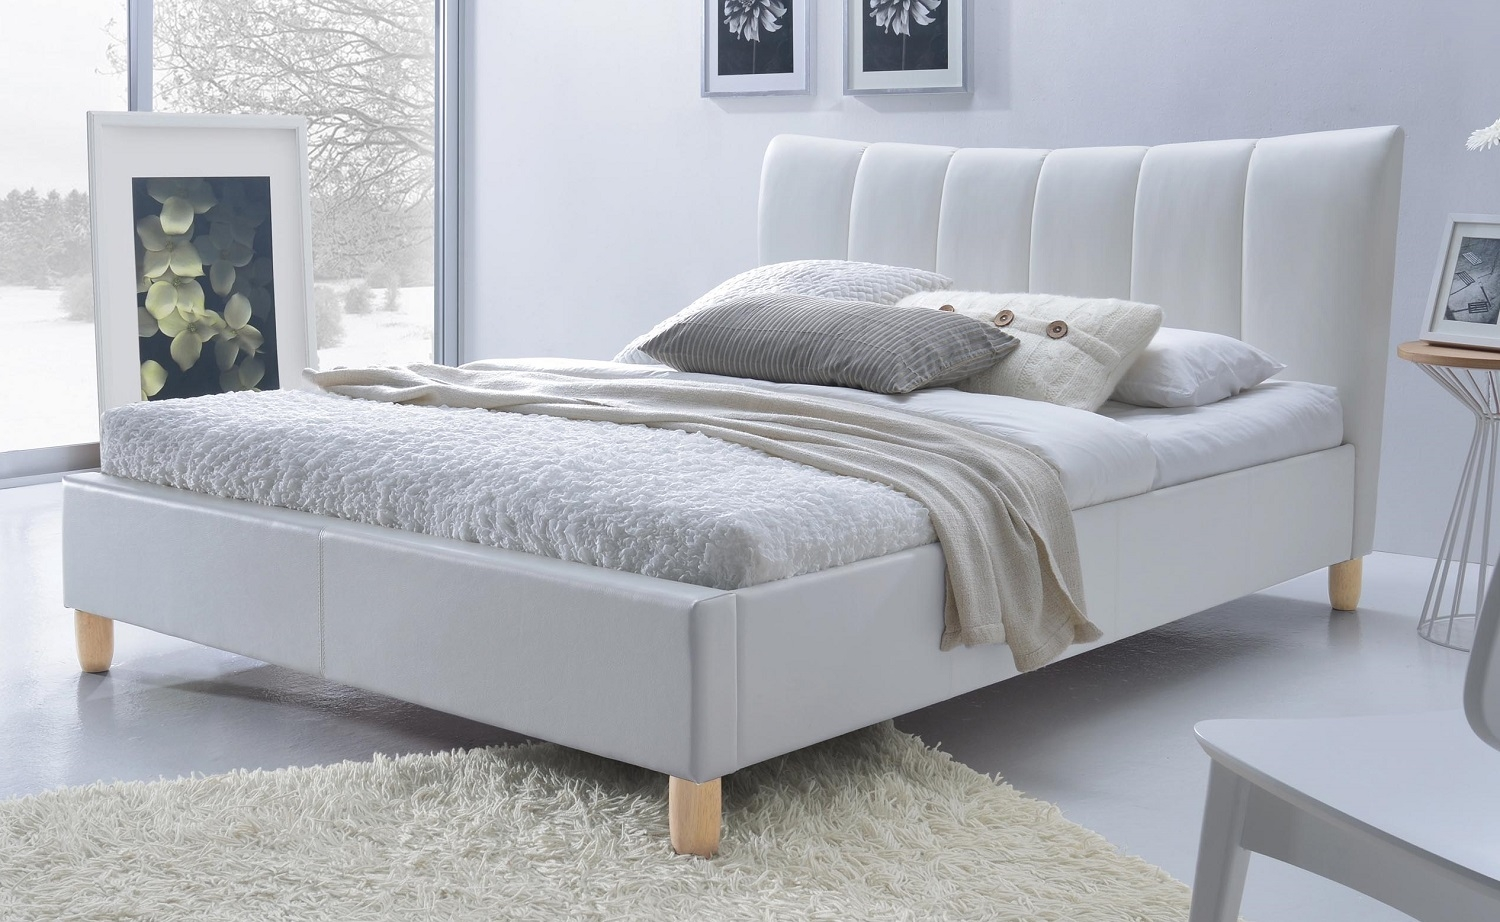 Tweepersoonsbed Sandy 160x200cm in wit | Home Style